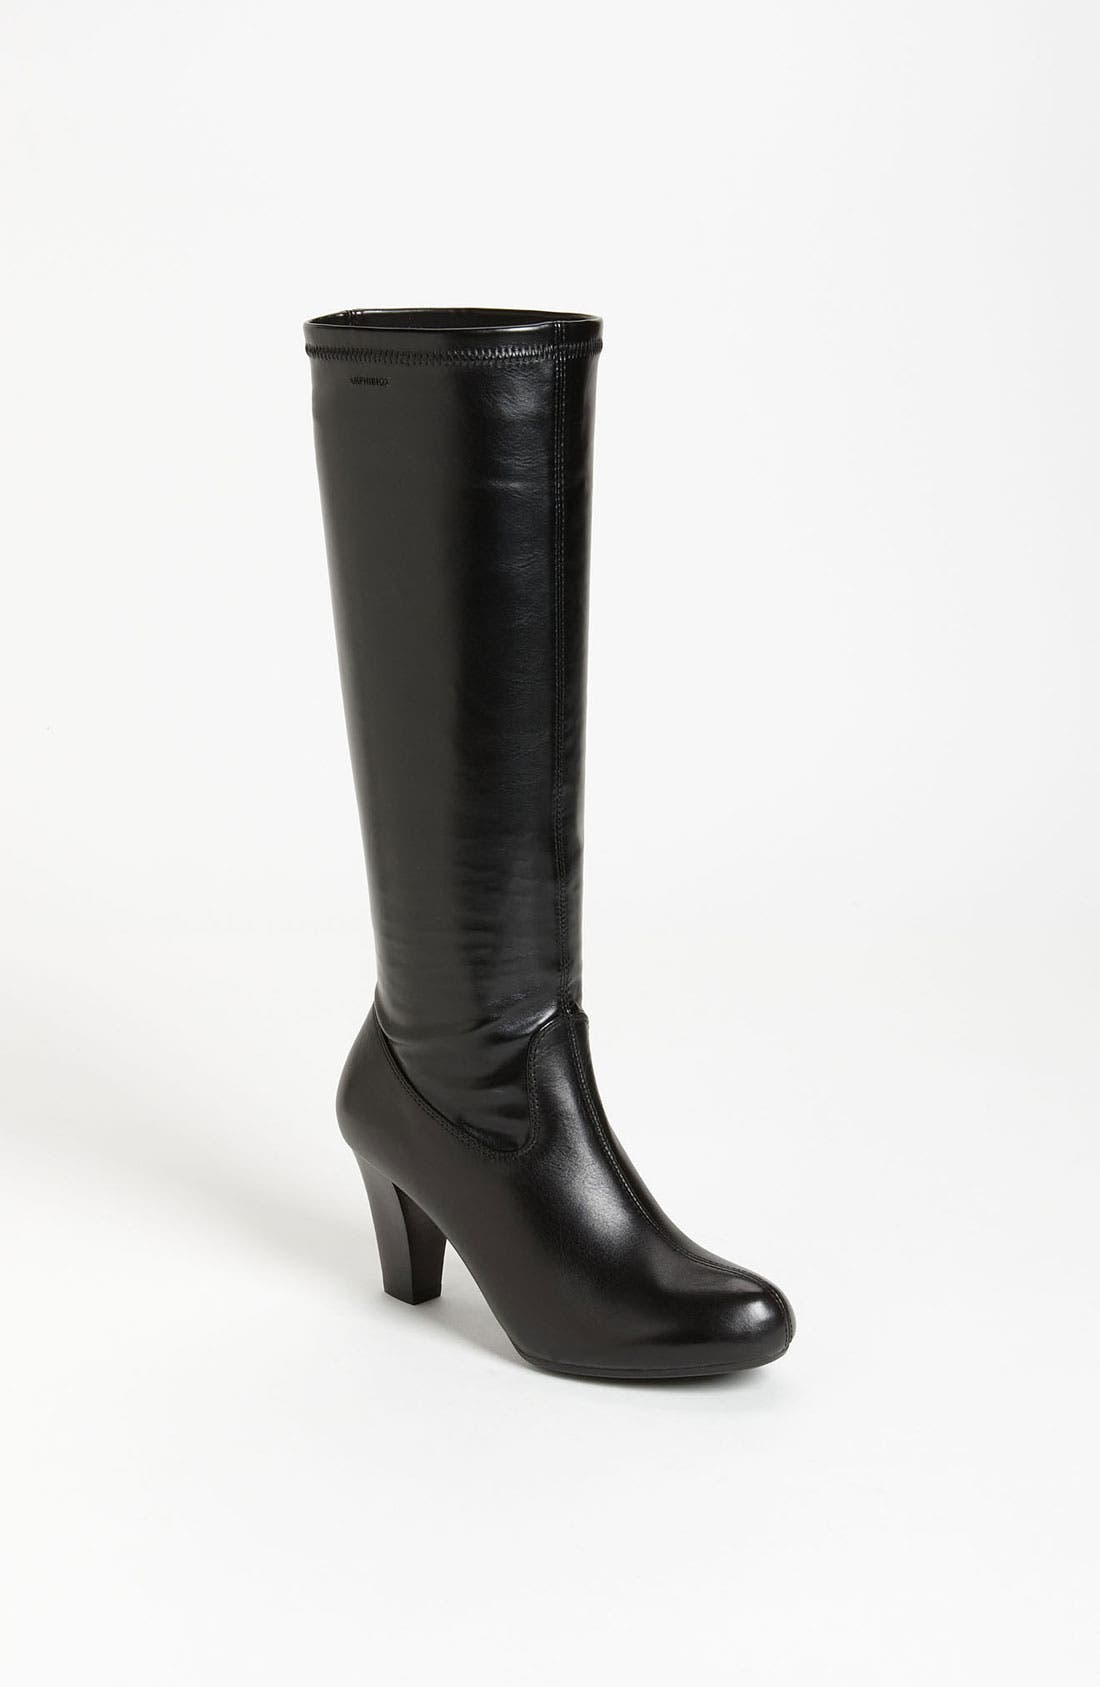 Alternate Image 1 Selected - Geox 'Marian' Tall Boot